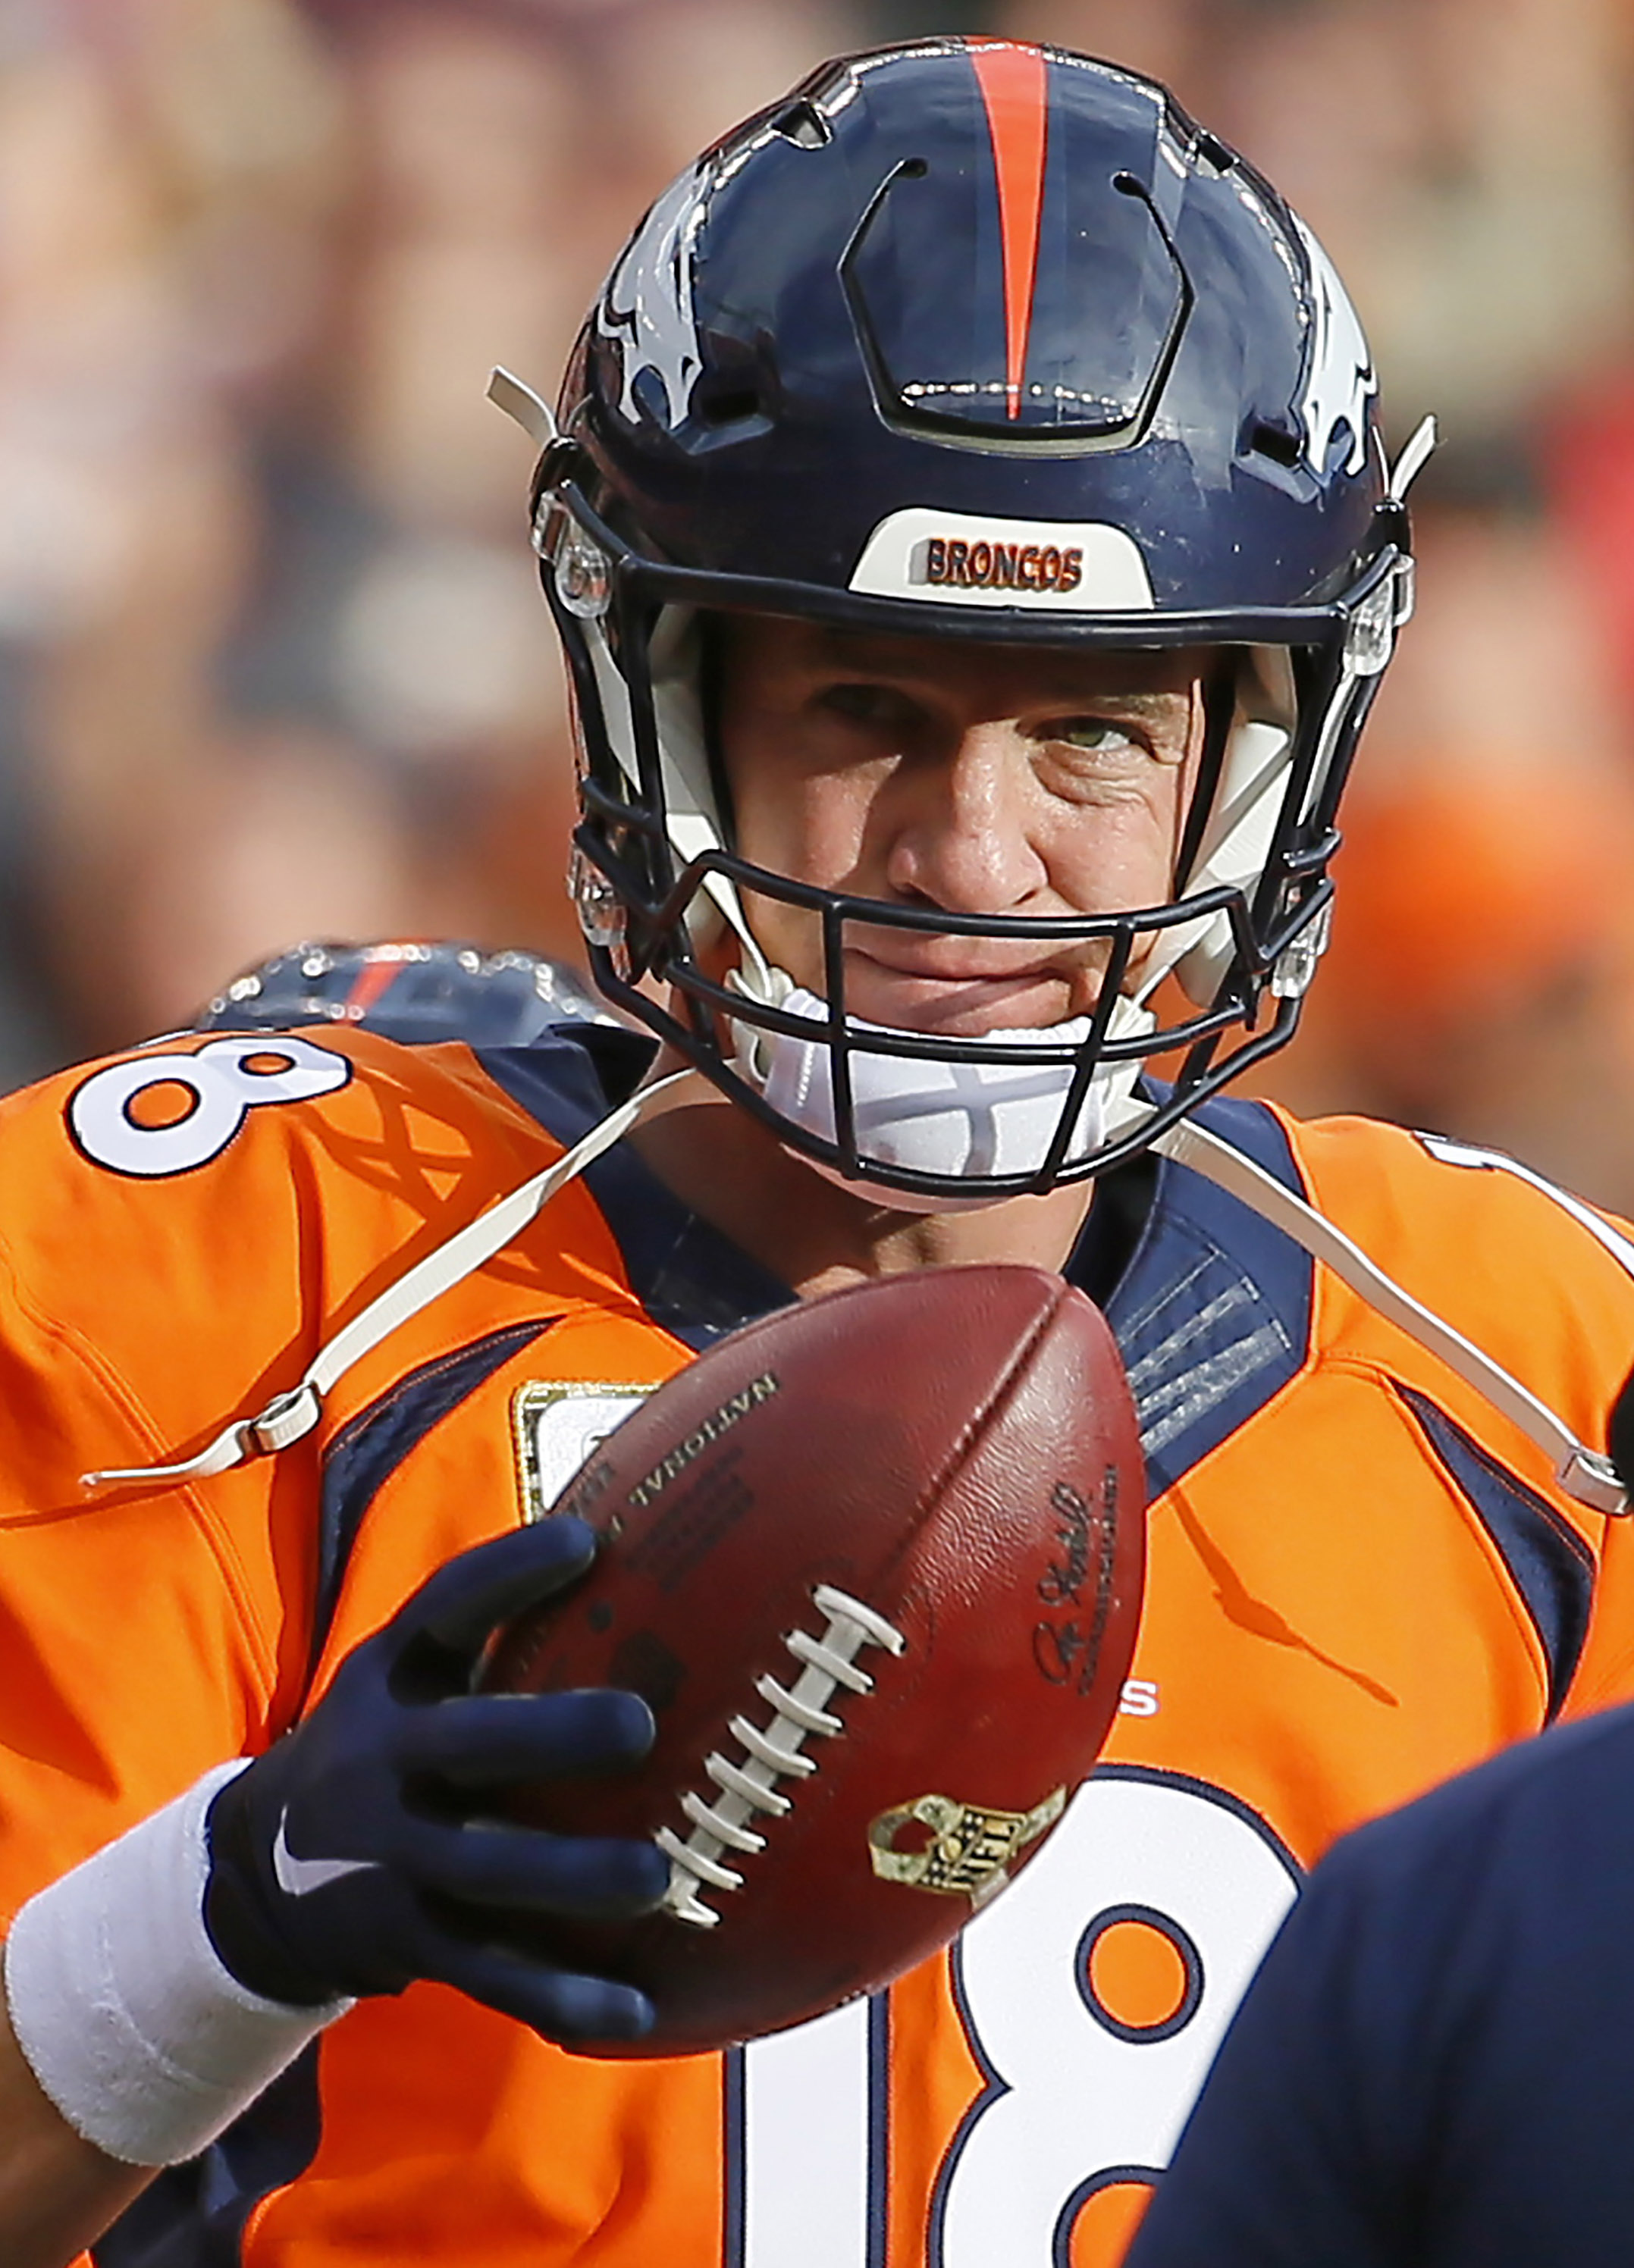 FILE - In this Sunday, Nov. 15, 2015 file photo, Denver Broncos quarterback Peyton Manning (18) smiles and acknowledges the crowd after setting the new passing recored against the Kansas City Chiefs during the first half of an NFL football game in Denver.